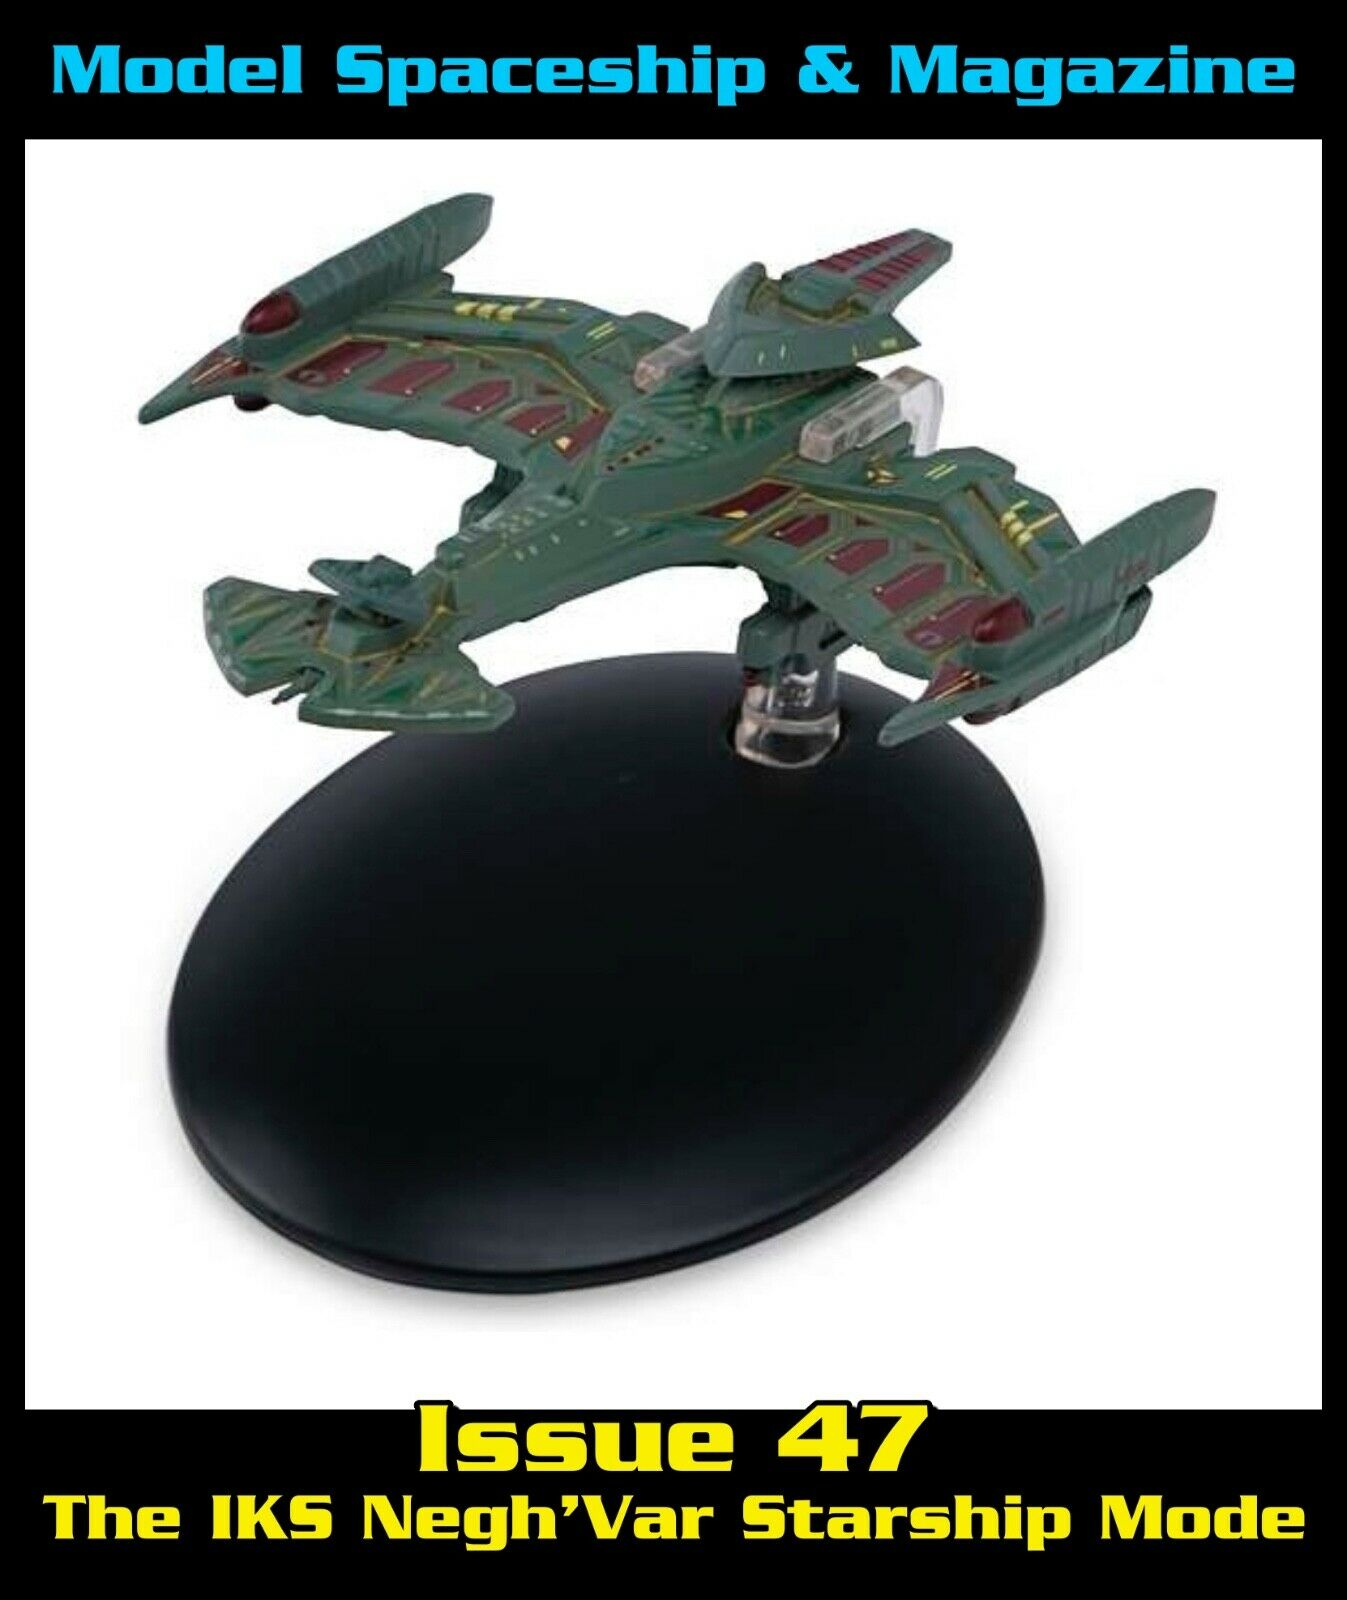 issue 47: The IKS Negh'Var Starship Mode